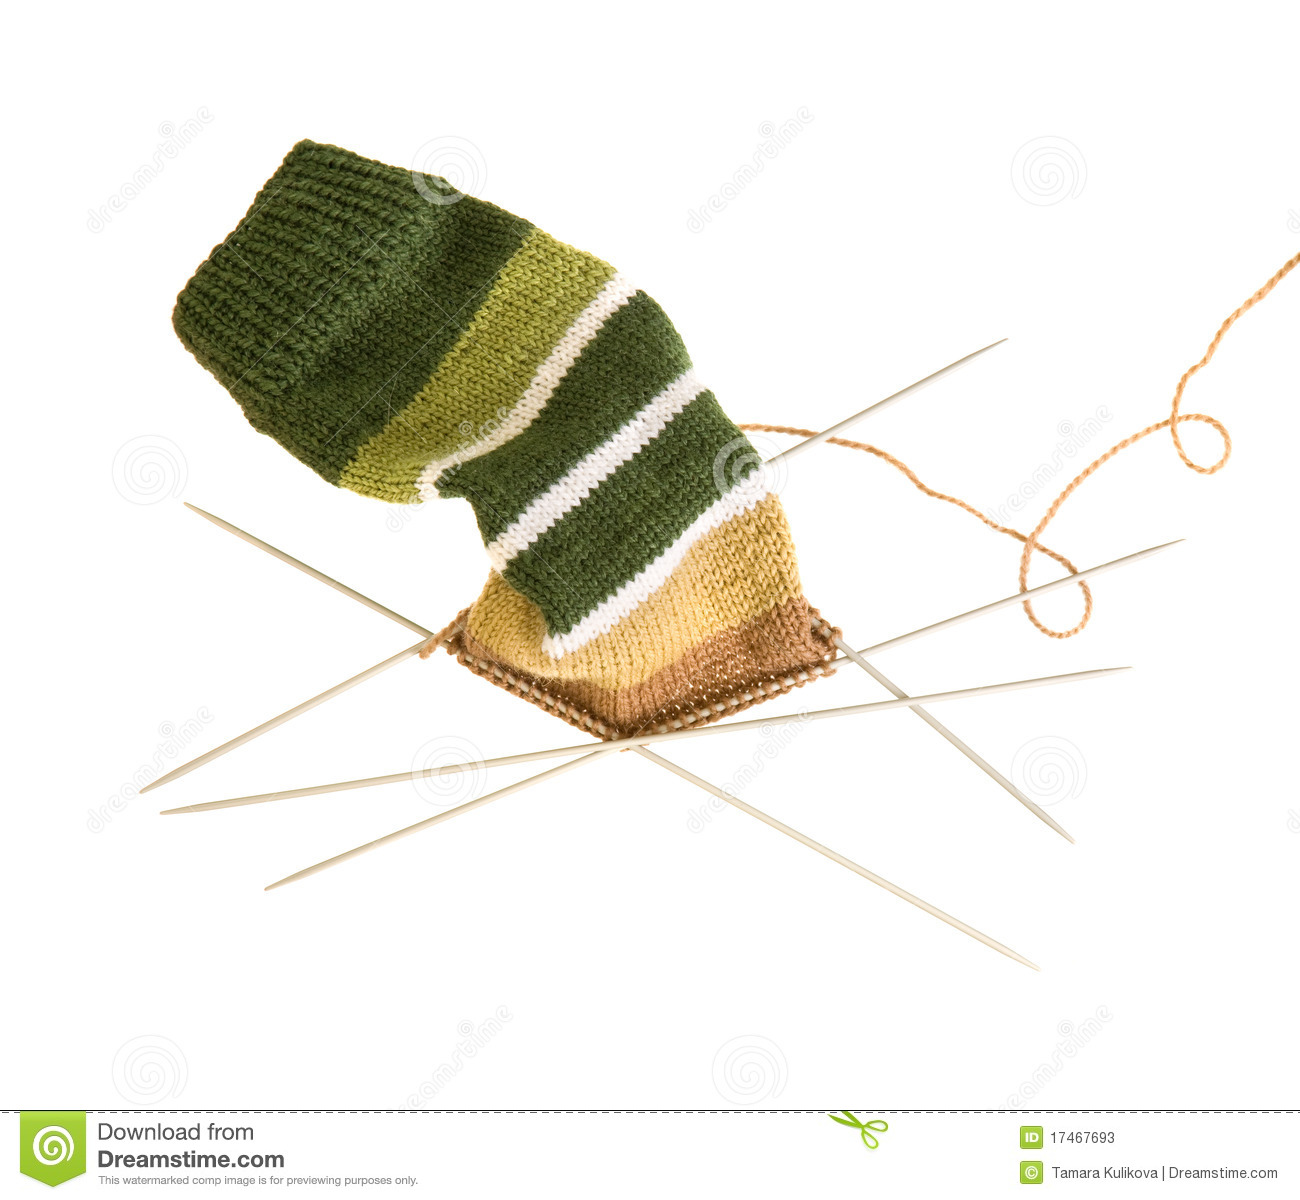 Knitting Pattern Socks Four Needles : Knitting A Striped Sock On Five Needles Stock Photos - Image: 17467693